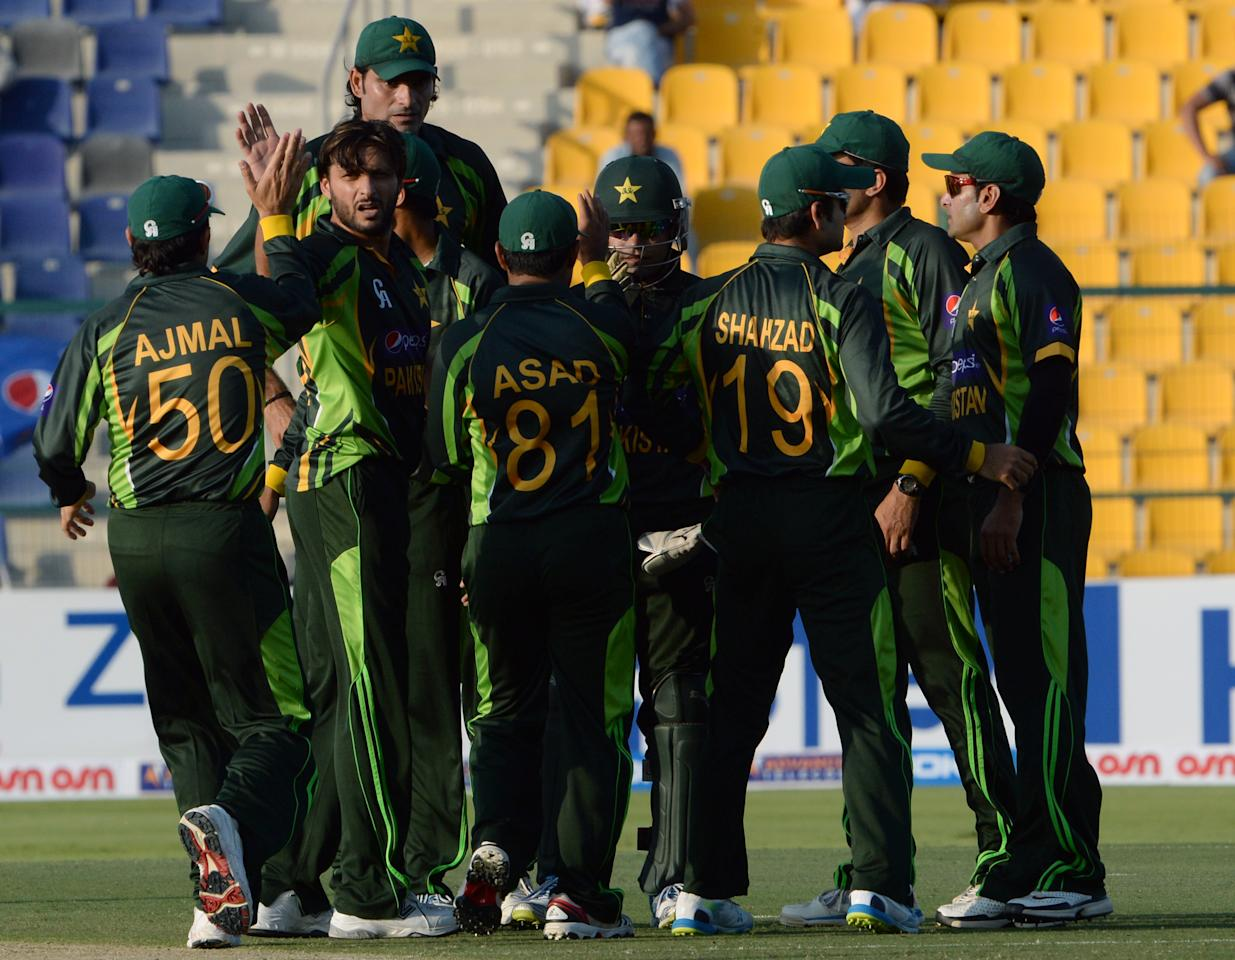 Pakistan's wicket keeper Shahid Afridi (2nd L) celebrates with team-mates after taking a wicket of South African batsman Quinton de Kock (unseen) during the third day-night international in Sheikh Zayed Cricket Stadium in Abu Dhabi on Novemver 6, 2013. South African captain AB de Villiers won the toss and decided to bat in the first. The five-match series is tied at 1-1. AFP PHOTO/ Asif HASSAN        (Photo credit should read ASIF HASSAN/AFP/Getty Images)